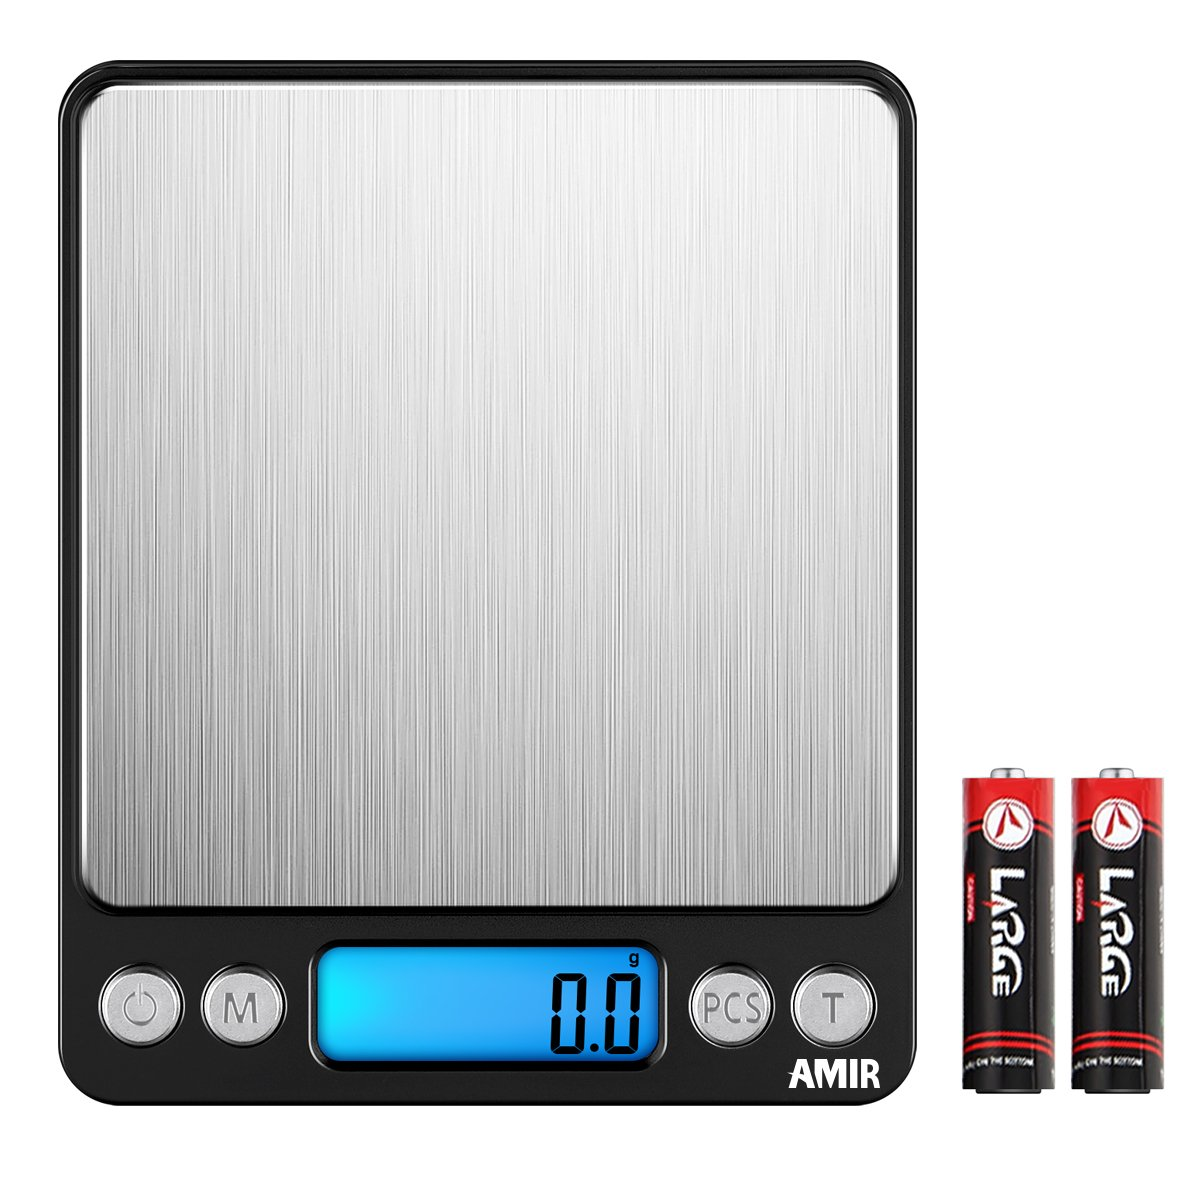 AMIR DE-KA6B Digital Kitchen Scale, Mini Scale